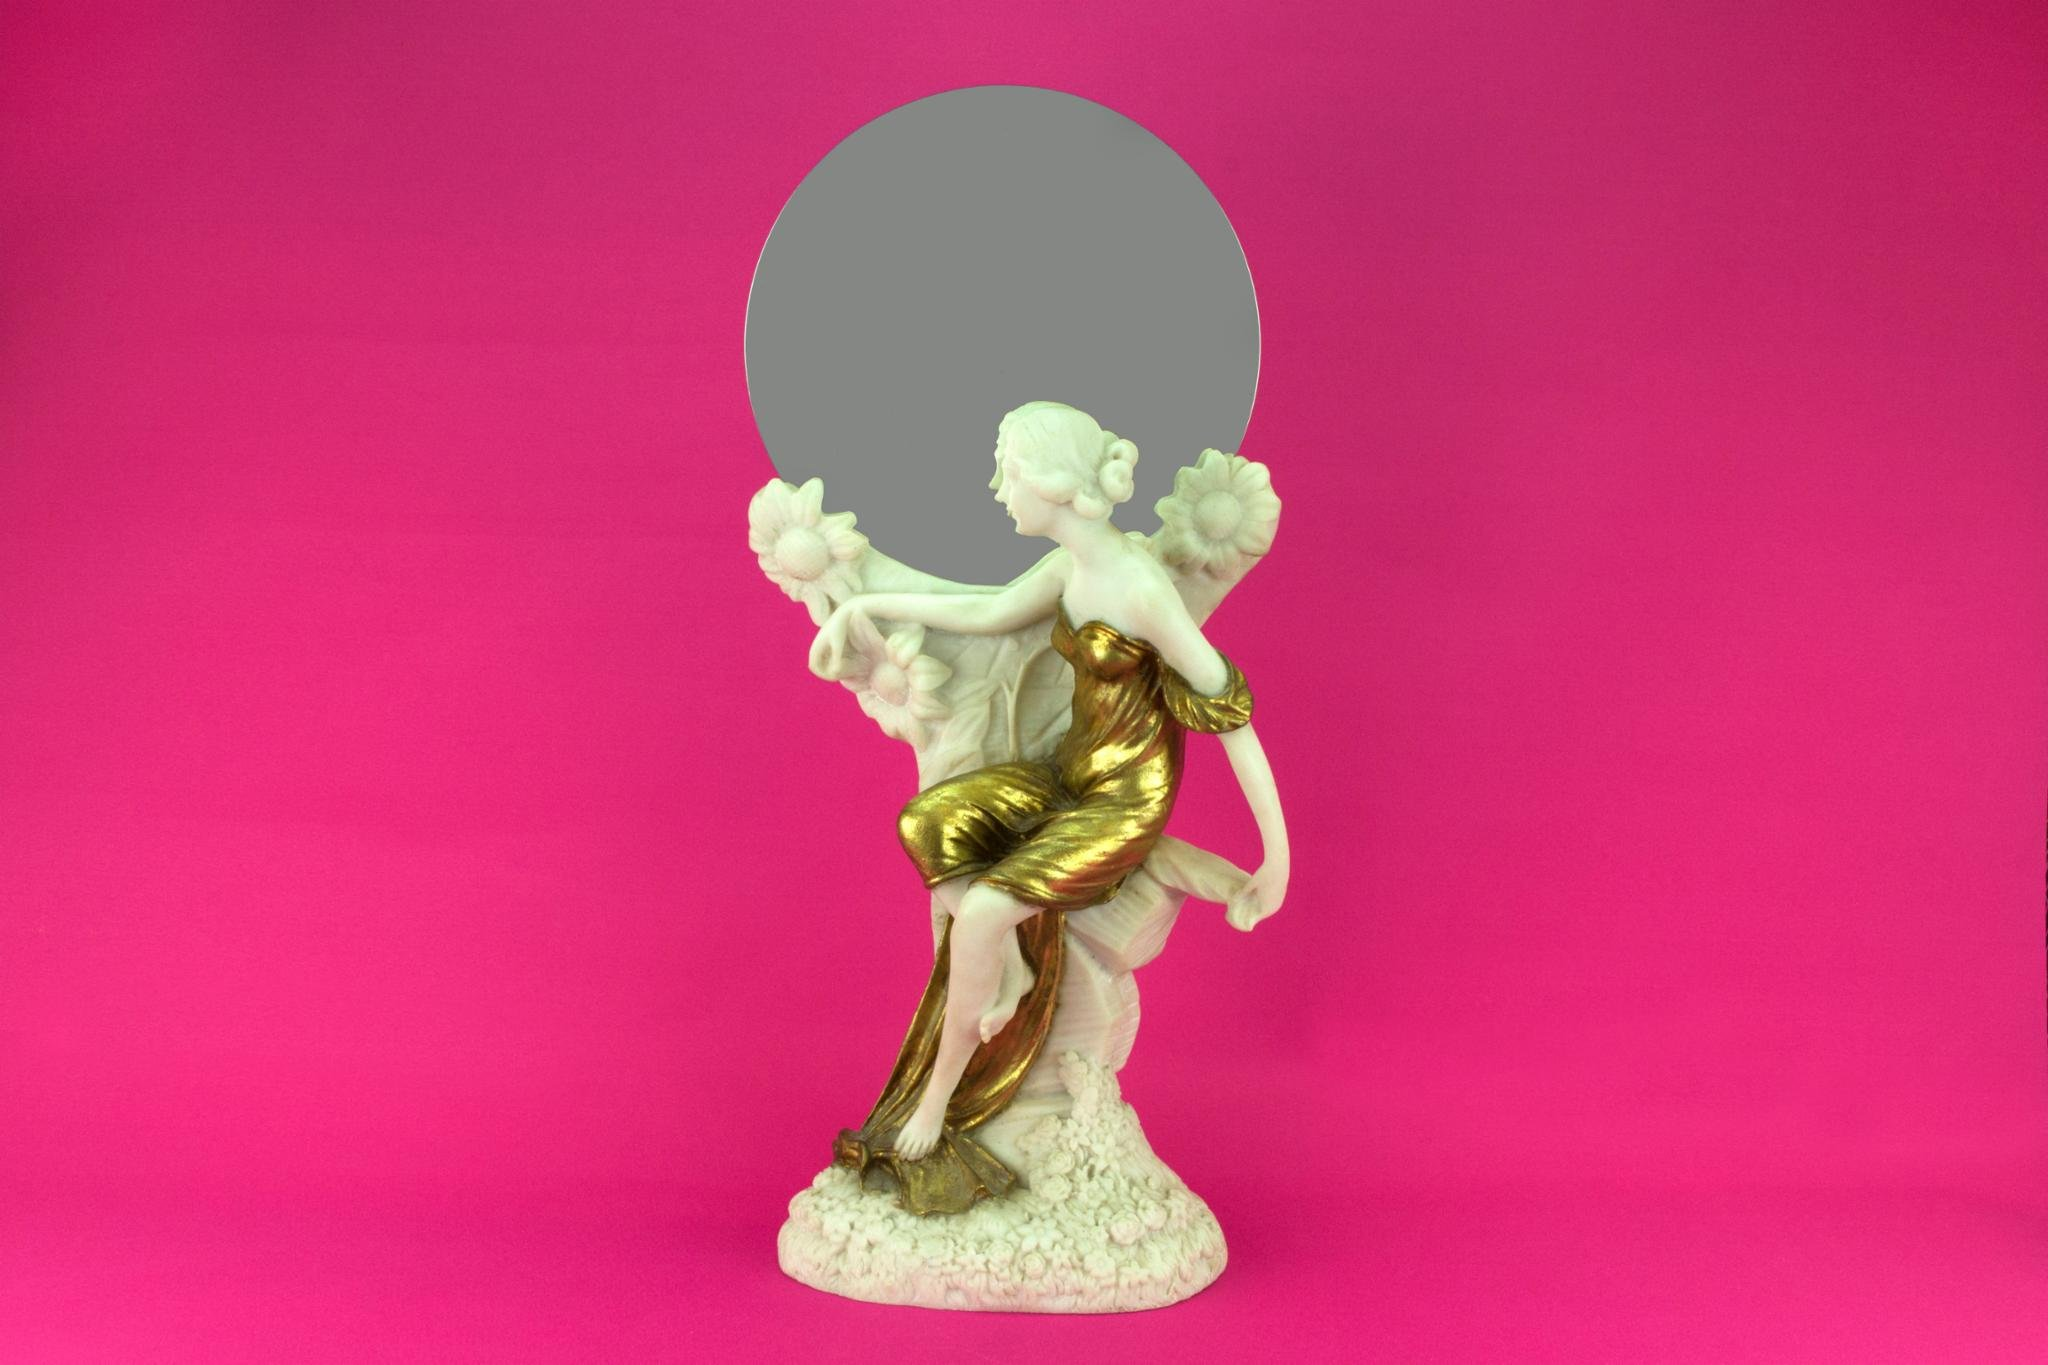 Table Mirror Art Nouveau Style Carved Girl Lady Sculpture Figure Gilded Resin Vintage Continental European Late 20th Century